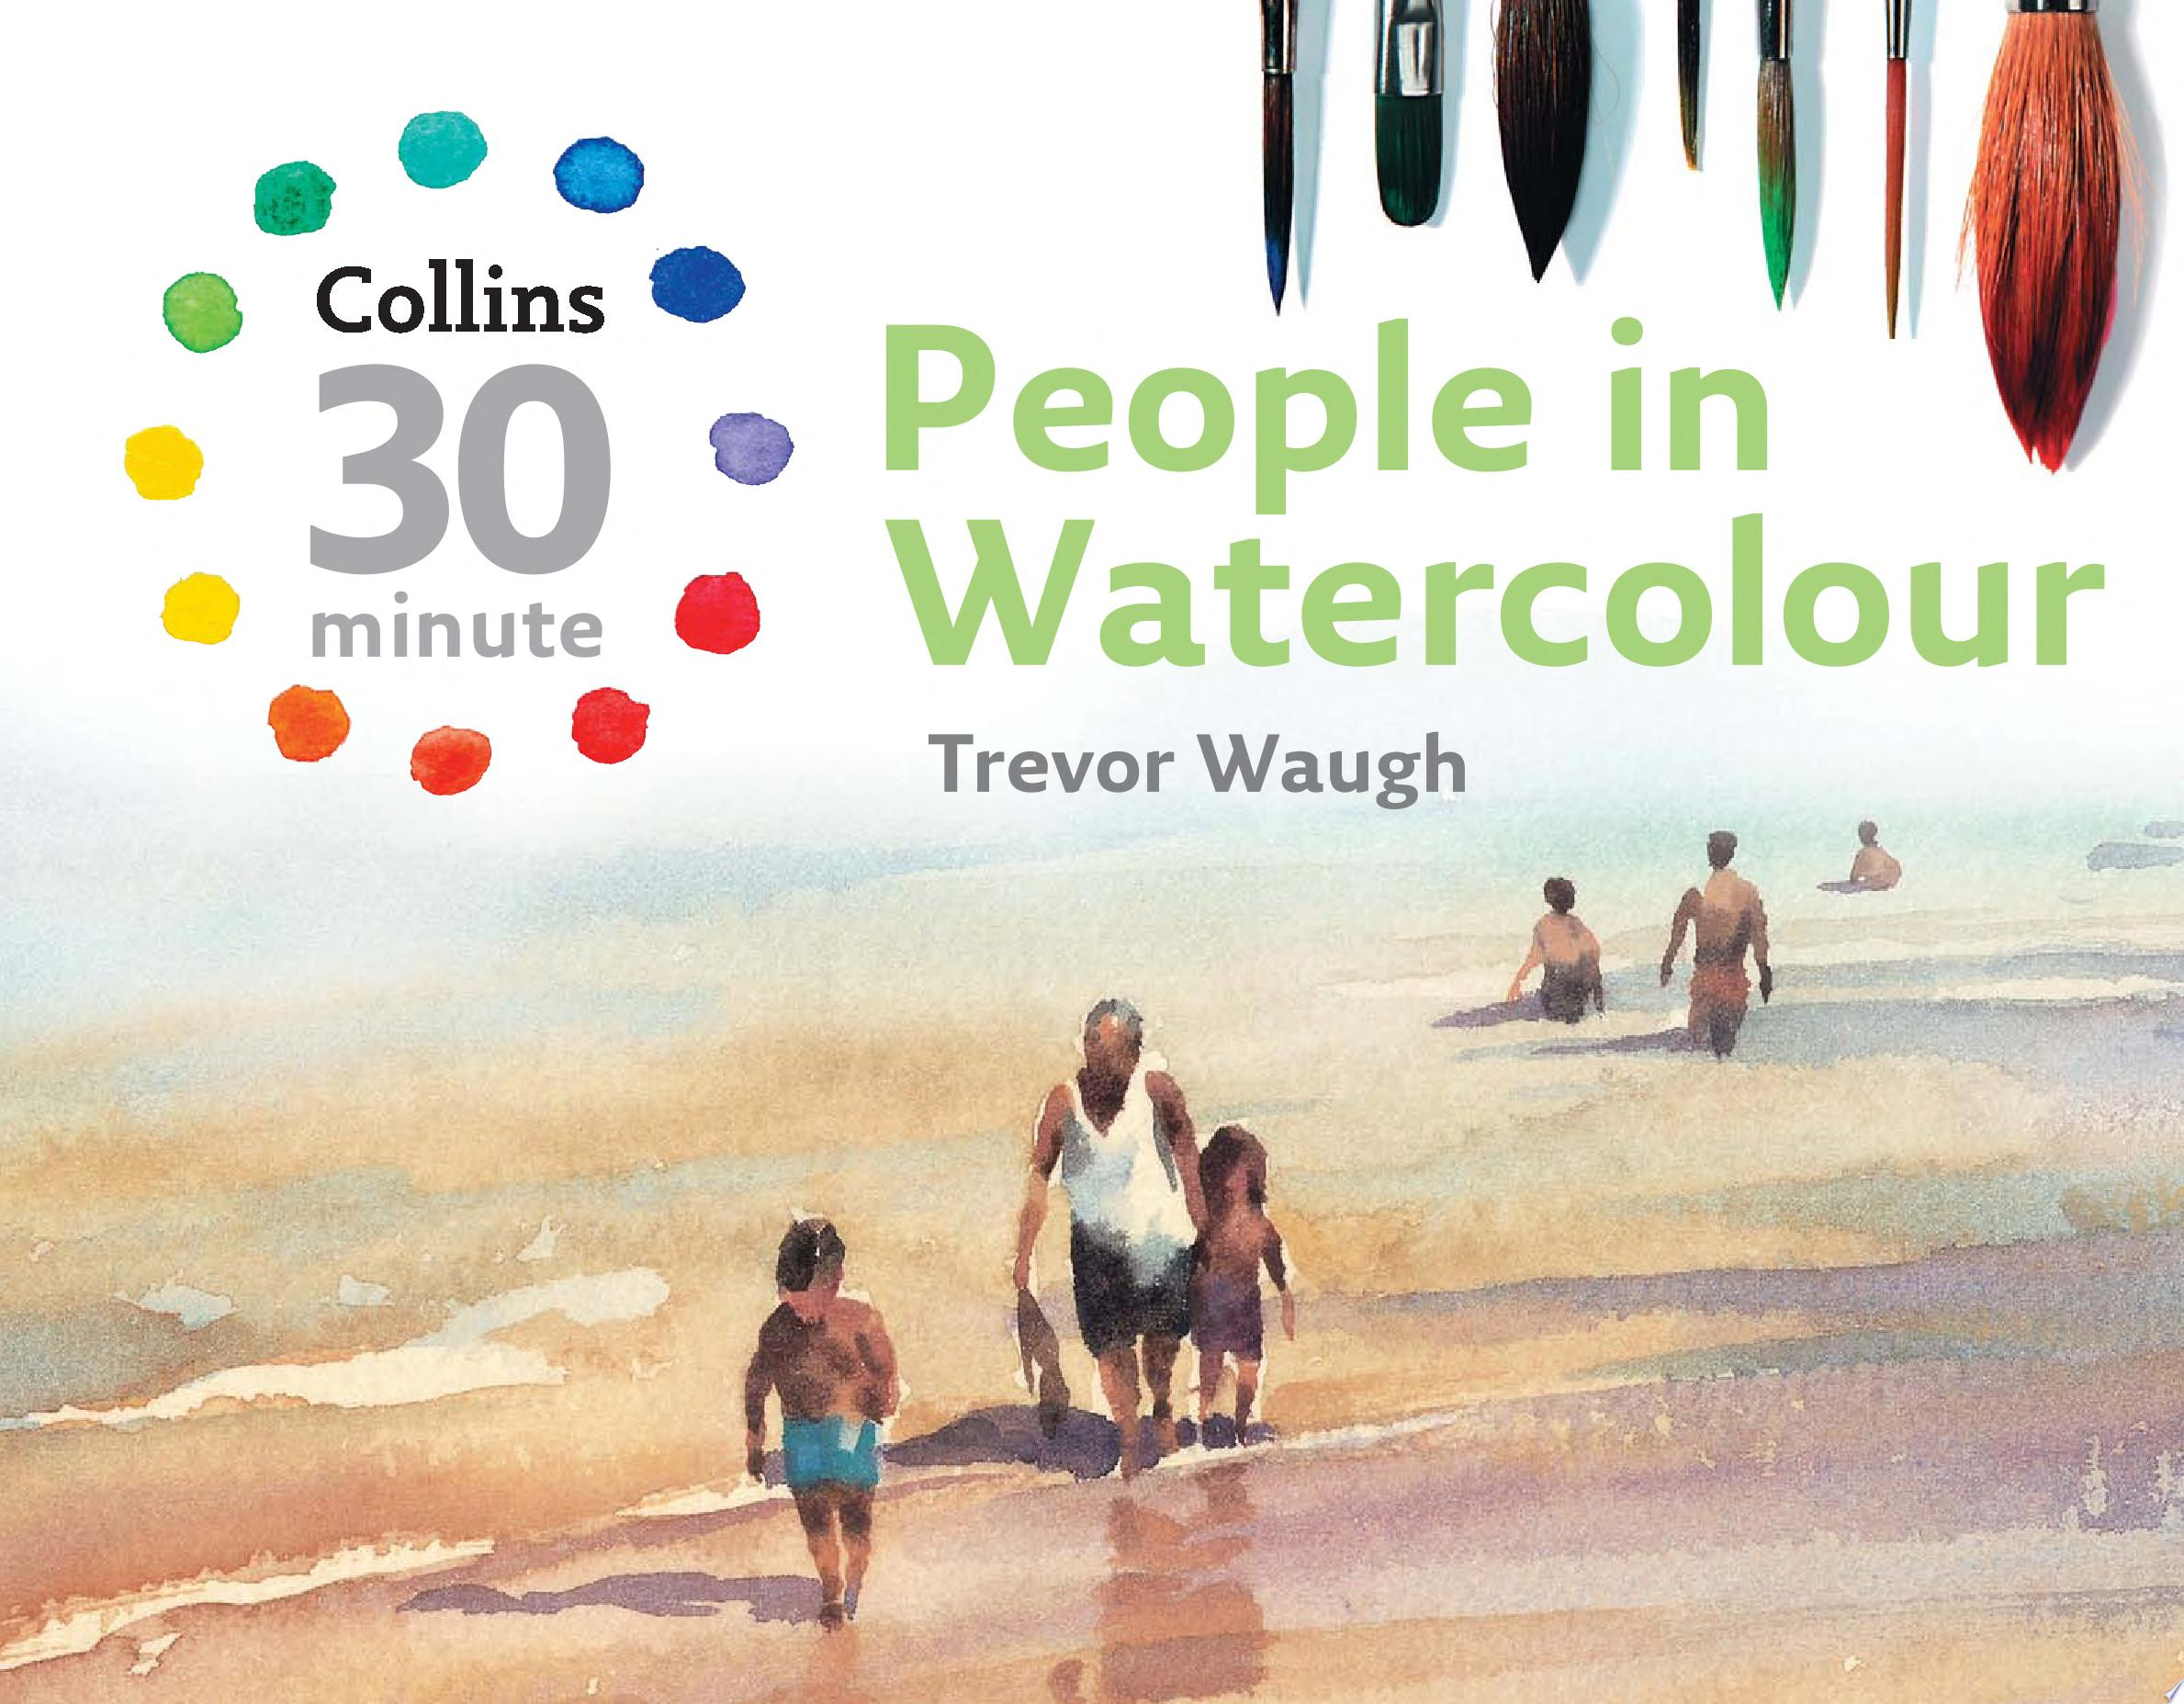 People in Watercolour  Collins 30 Minute Painting